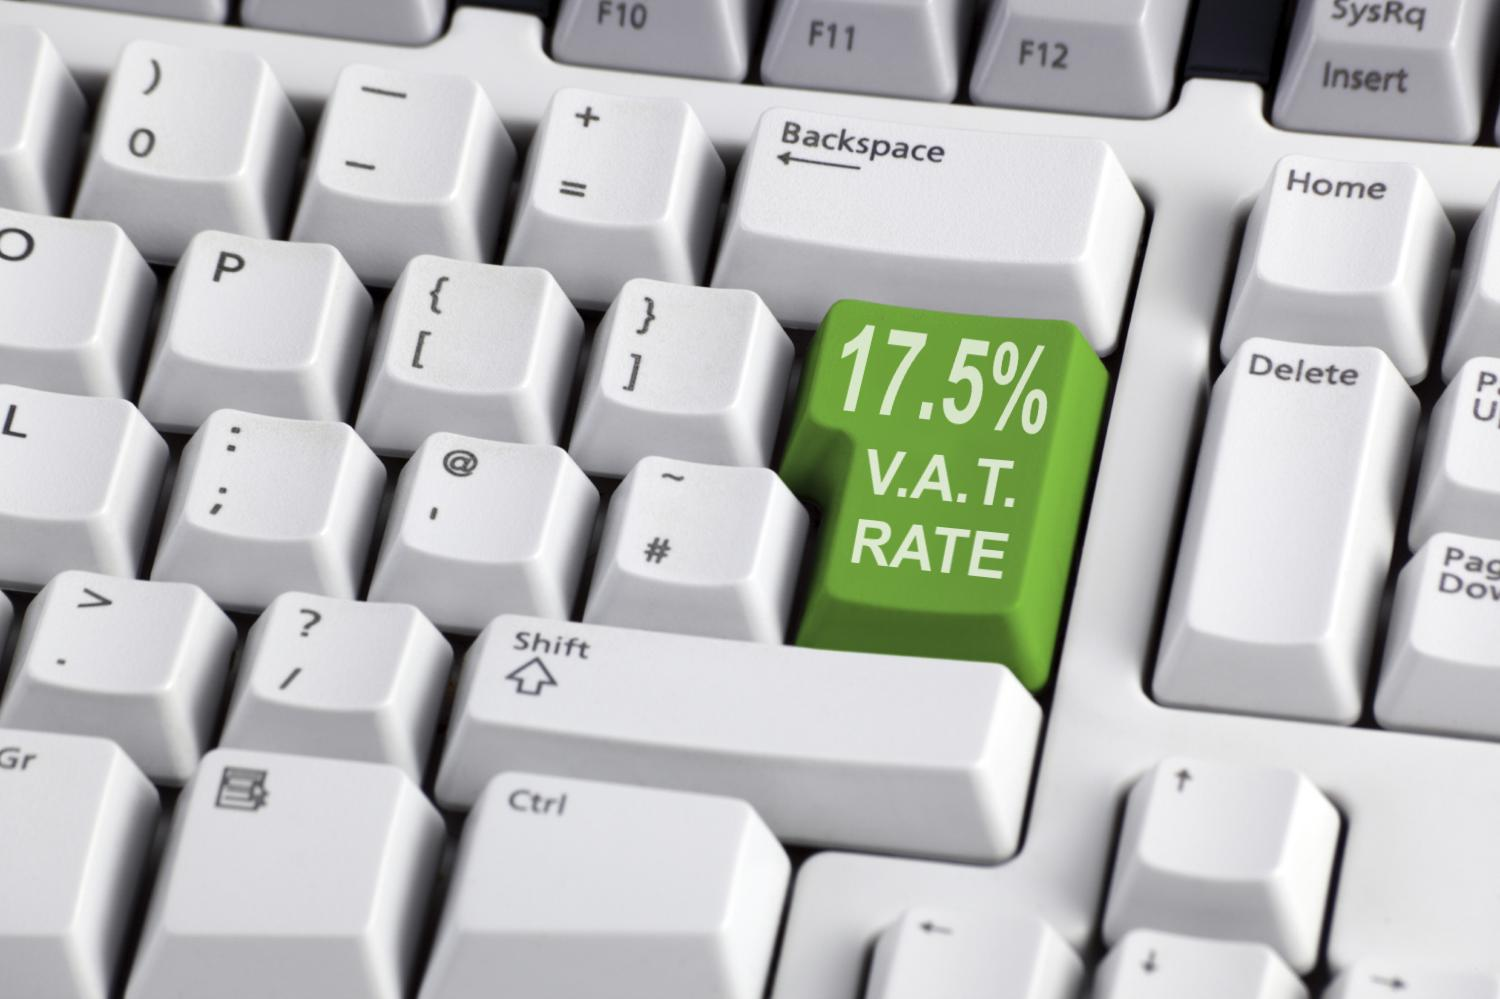 Cut the VAT rate to create jobs